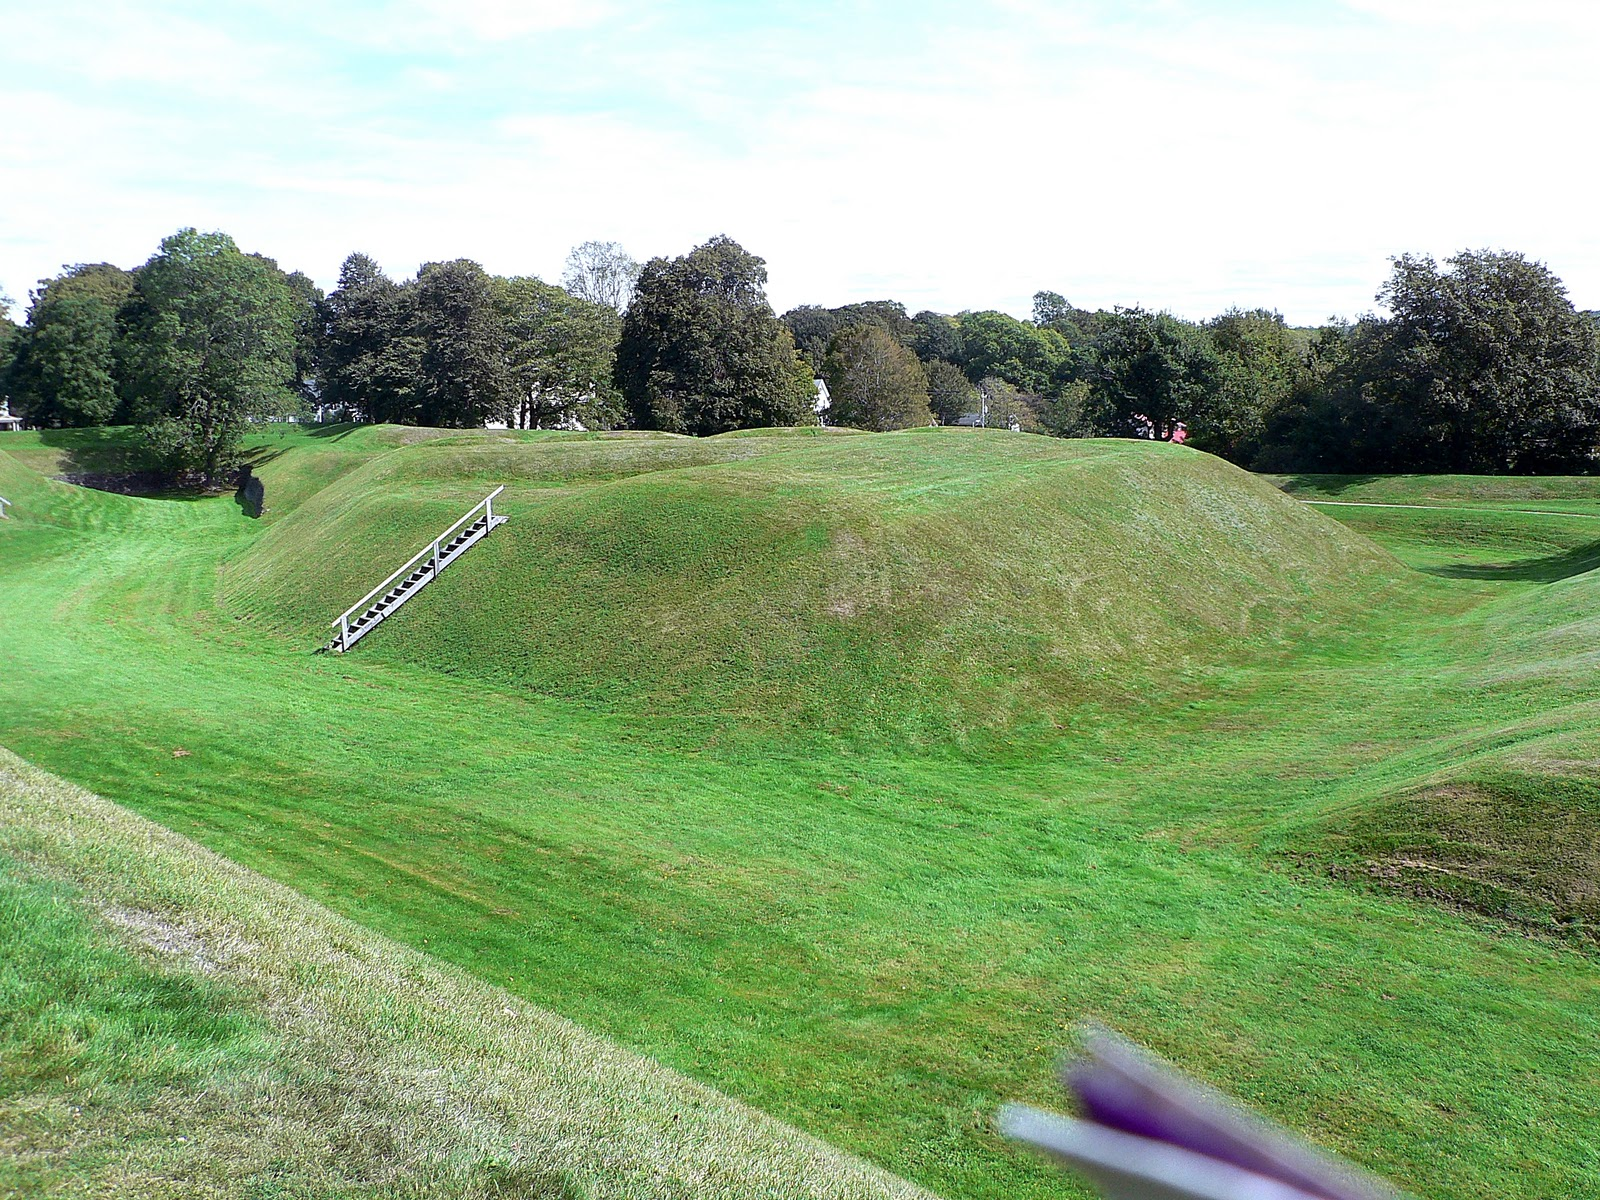 grand mound jewish personals Grand mound located along the banks of the rainy river  (cc by-sa 30) many laurel culture burial mounds and base camps are located along the rainy river, which flows between fort frances, ontario and international falls, minnesota.